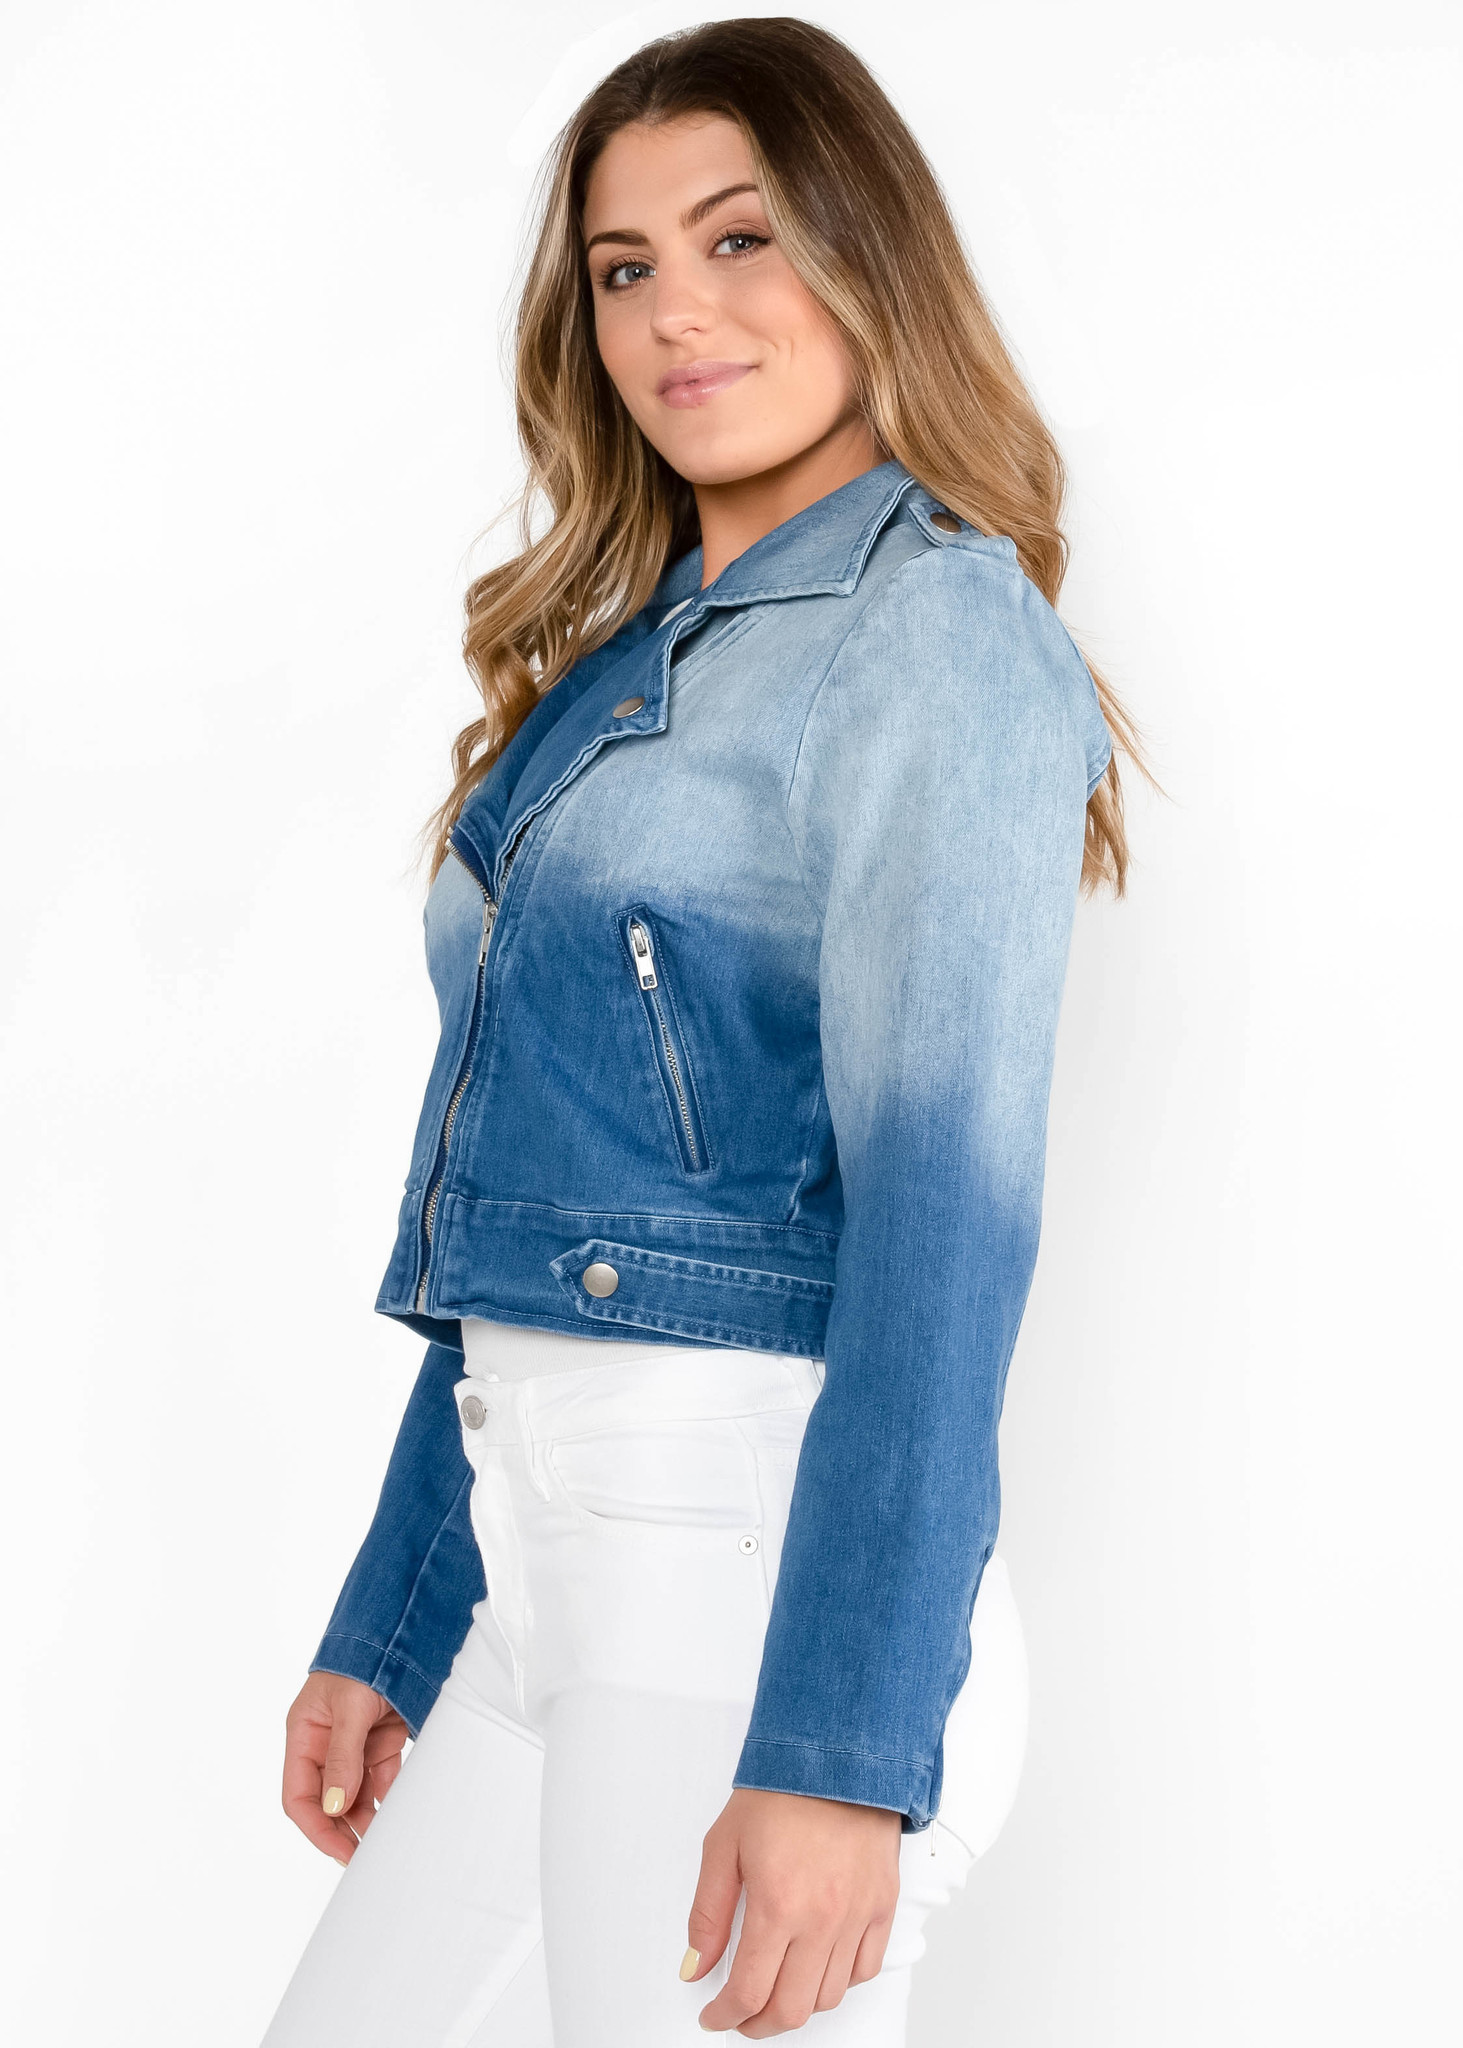 CITY BLOCK OMBRE JEAN JACKET